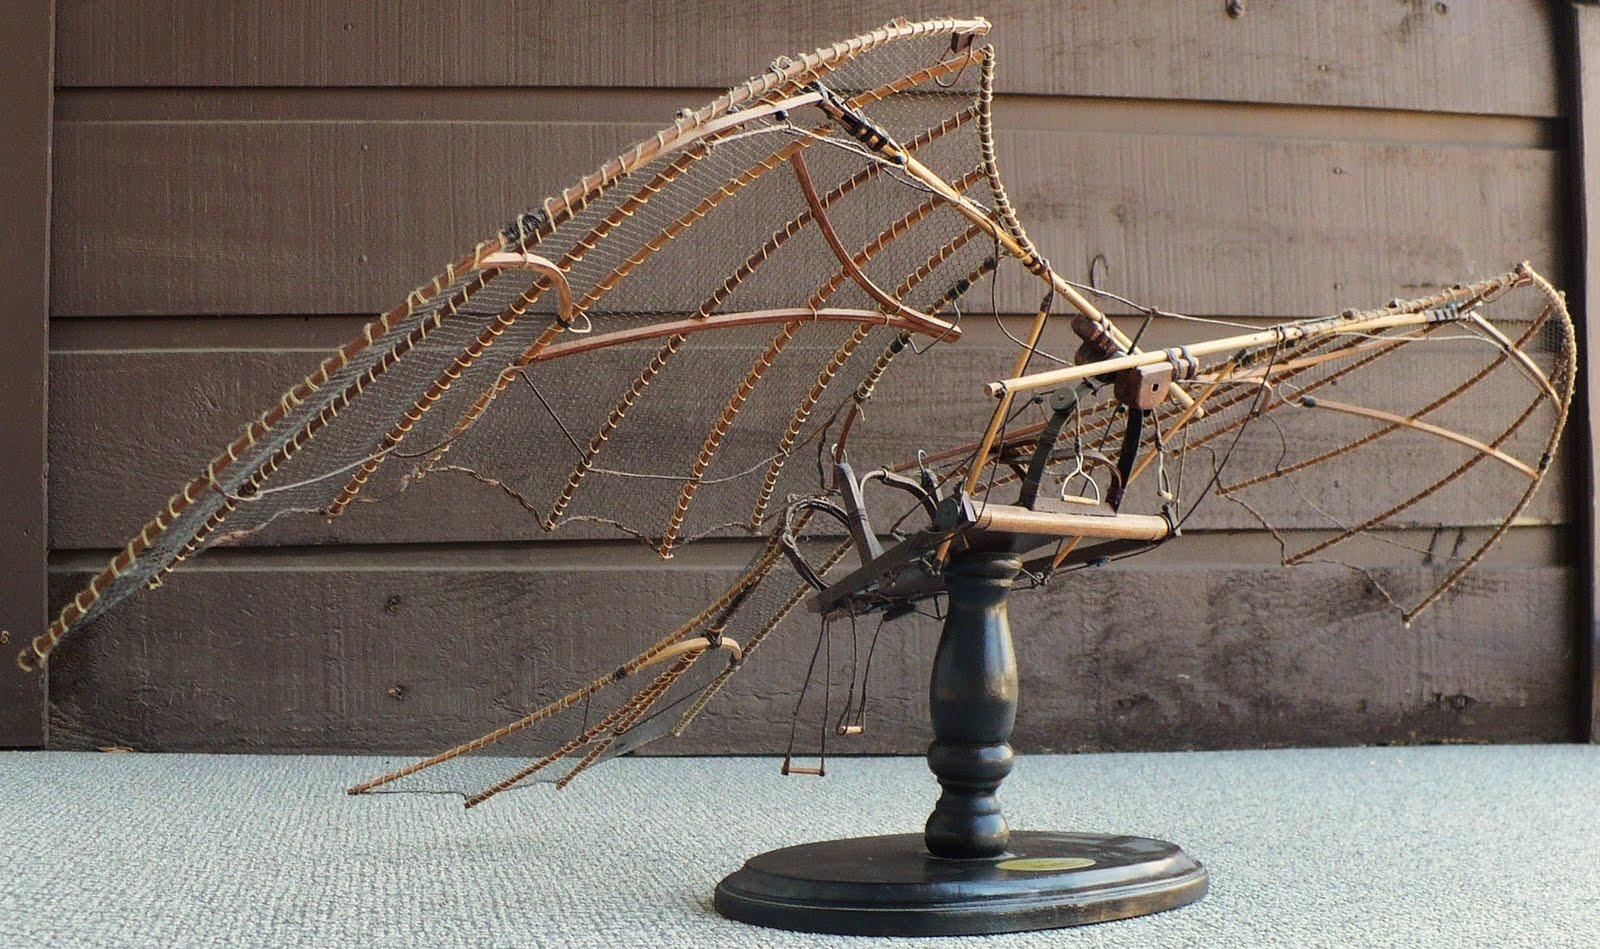 davinci flying machine model